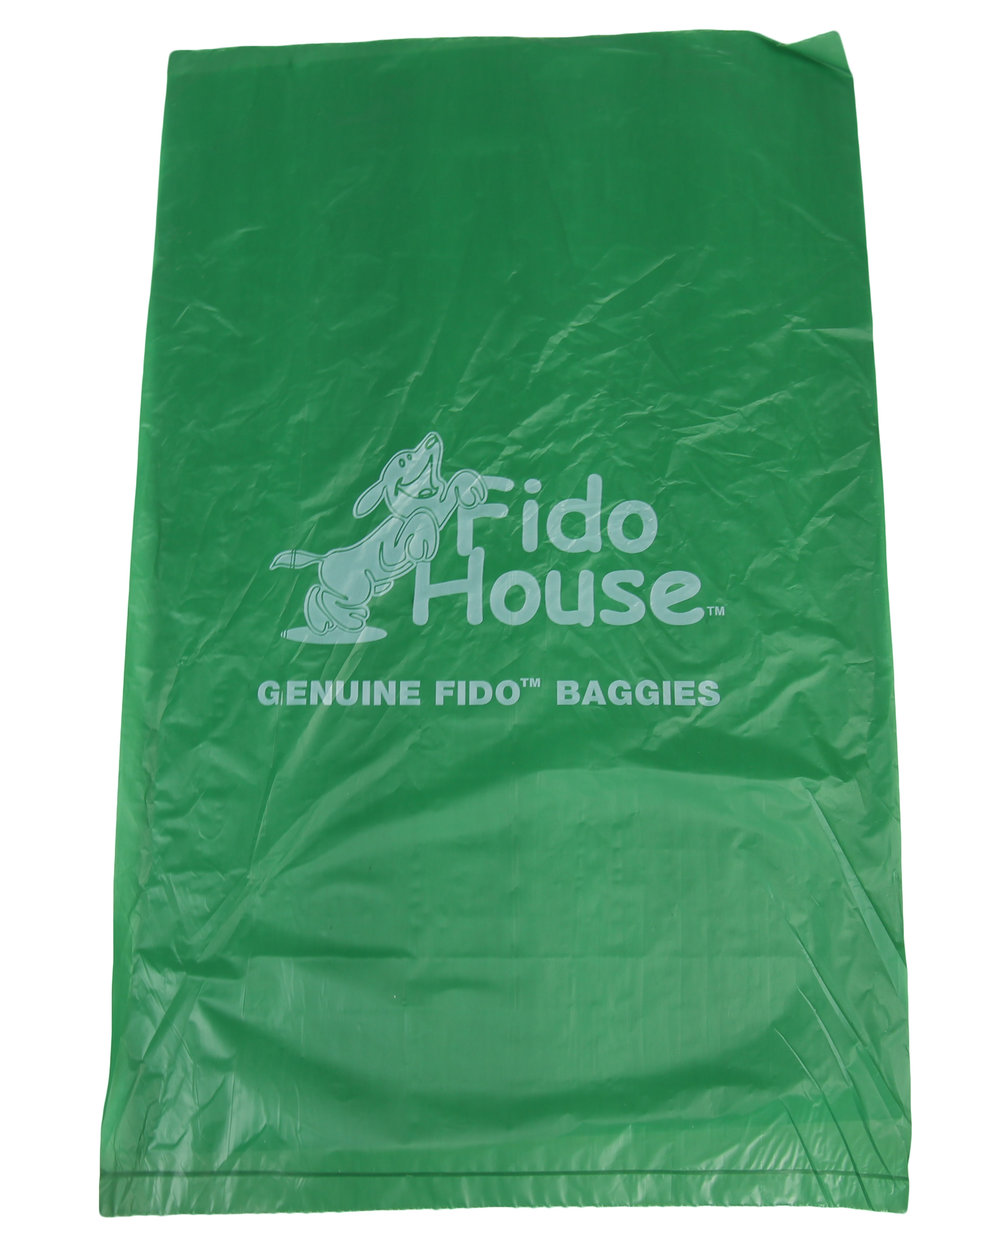 Frost code 2012 Pet Waste Disposable Bags Single Bag View.jpg